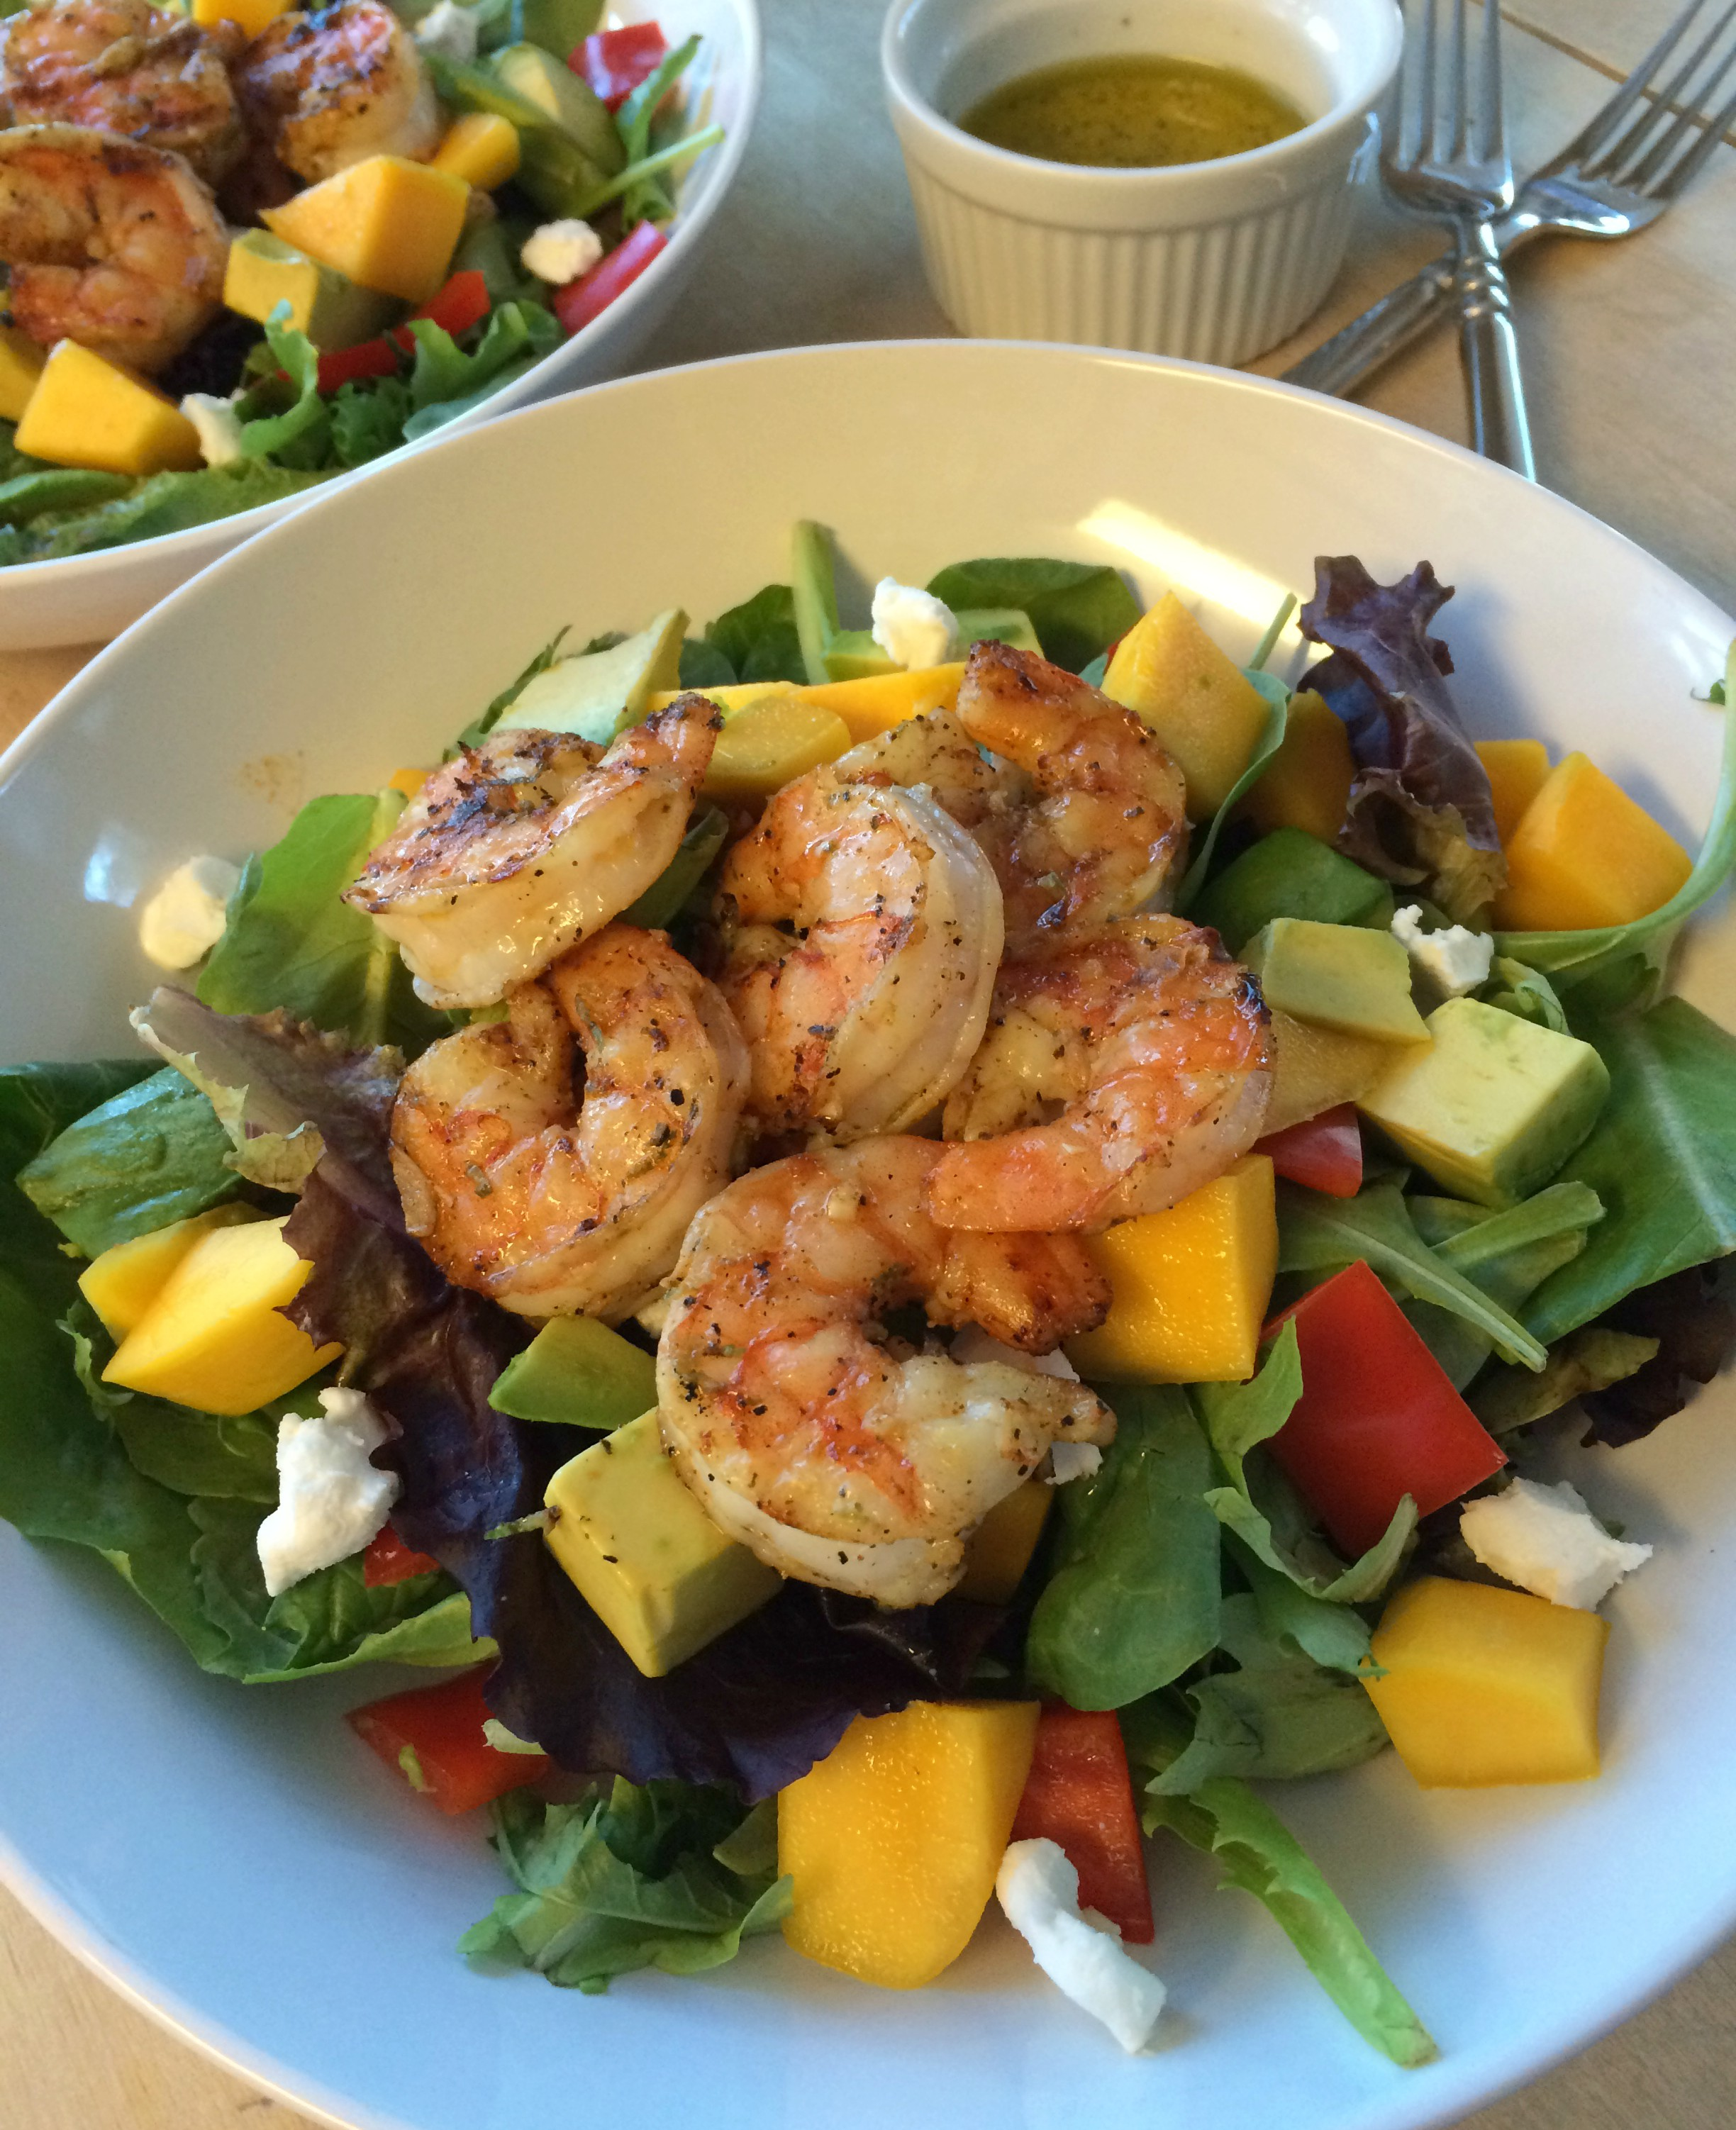 Grilled Chili Lime Shrimp, Mango, and Goat Cheese Salad